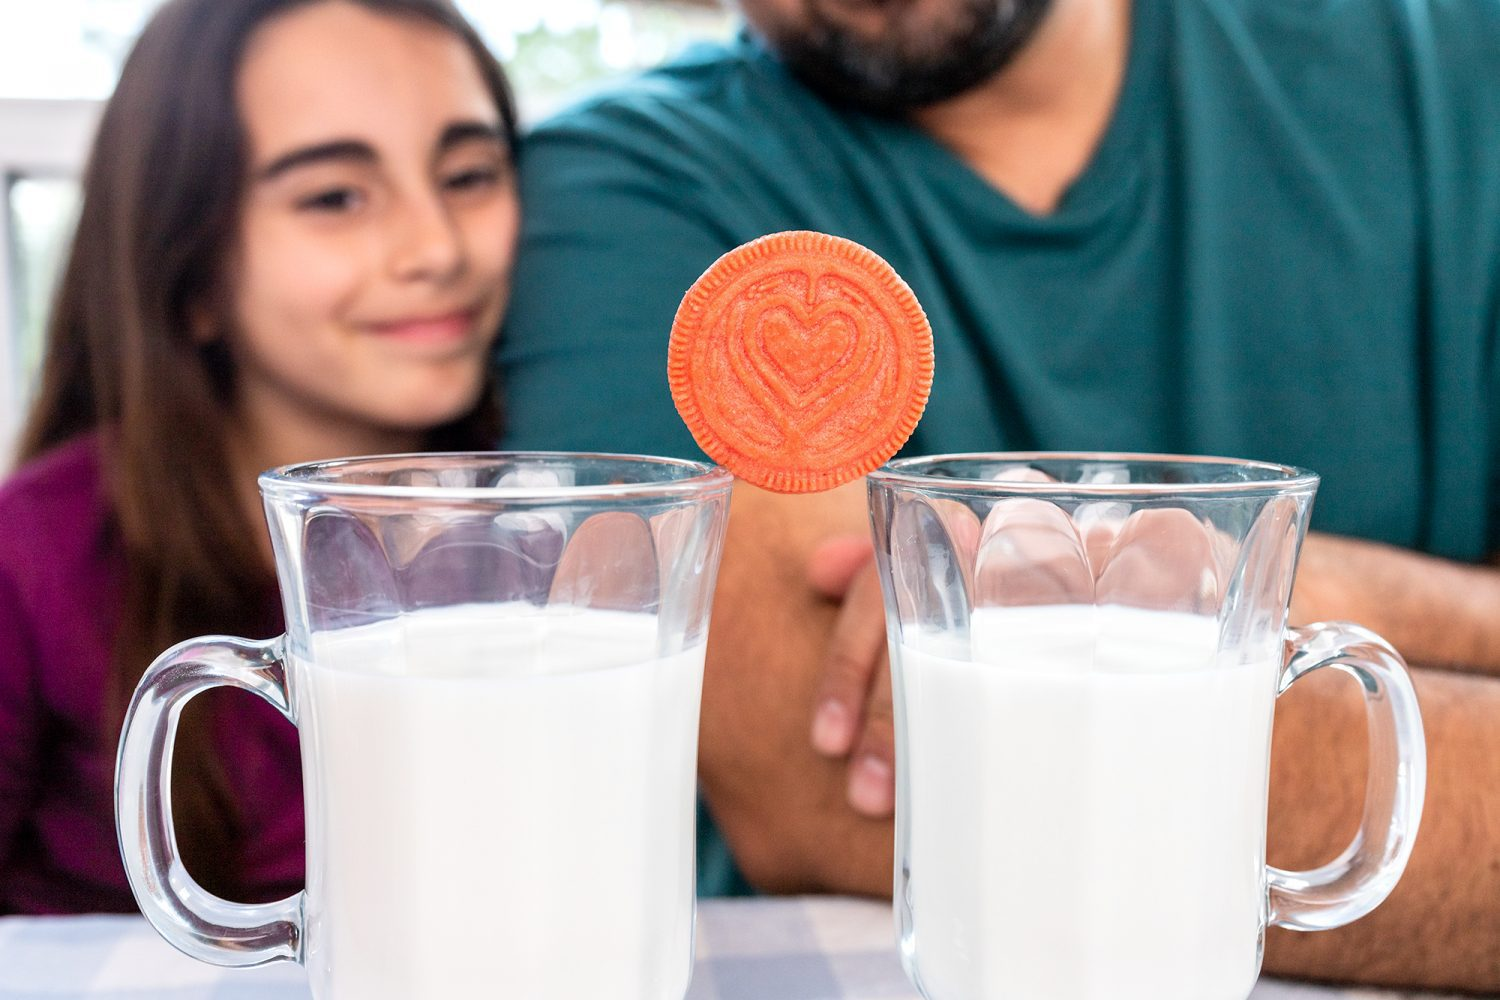 Lady Gaga OREO Cookie balancing on top of two cups of milk